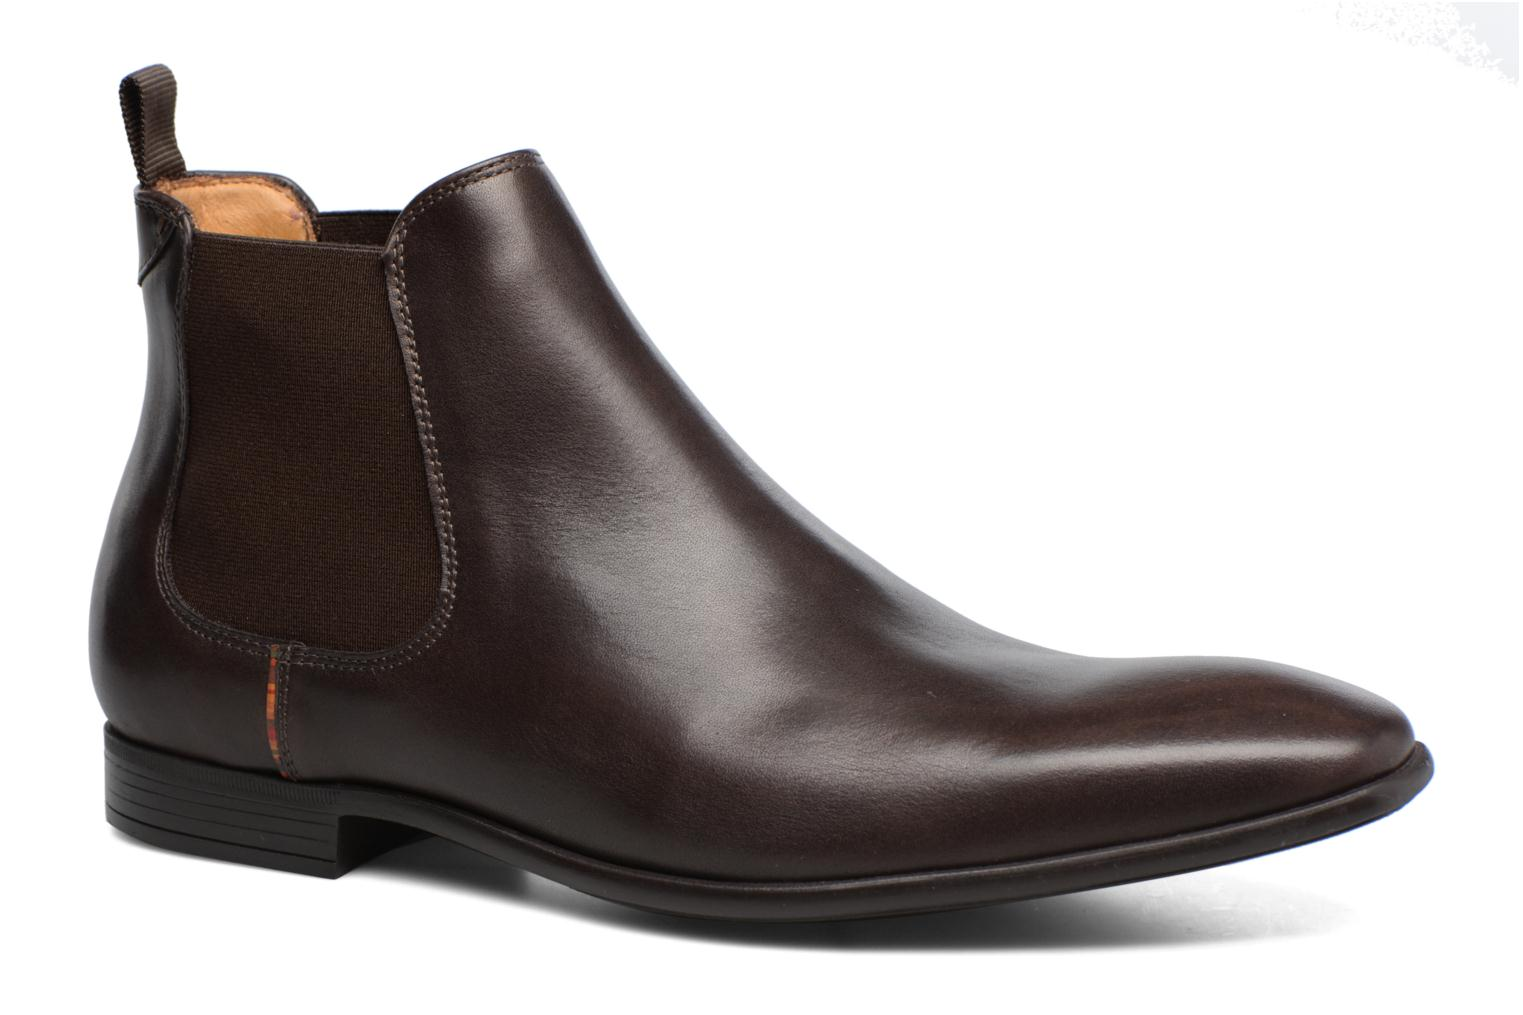 Bottines et boots Paul Smith Falconer Marron vue détail/paire